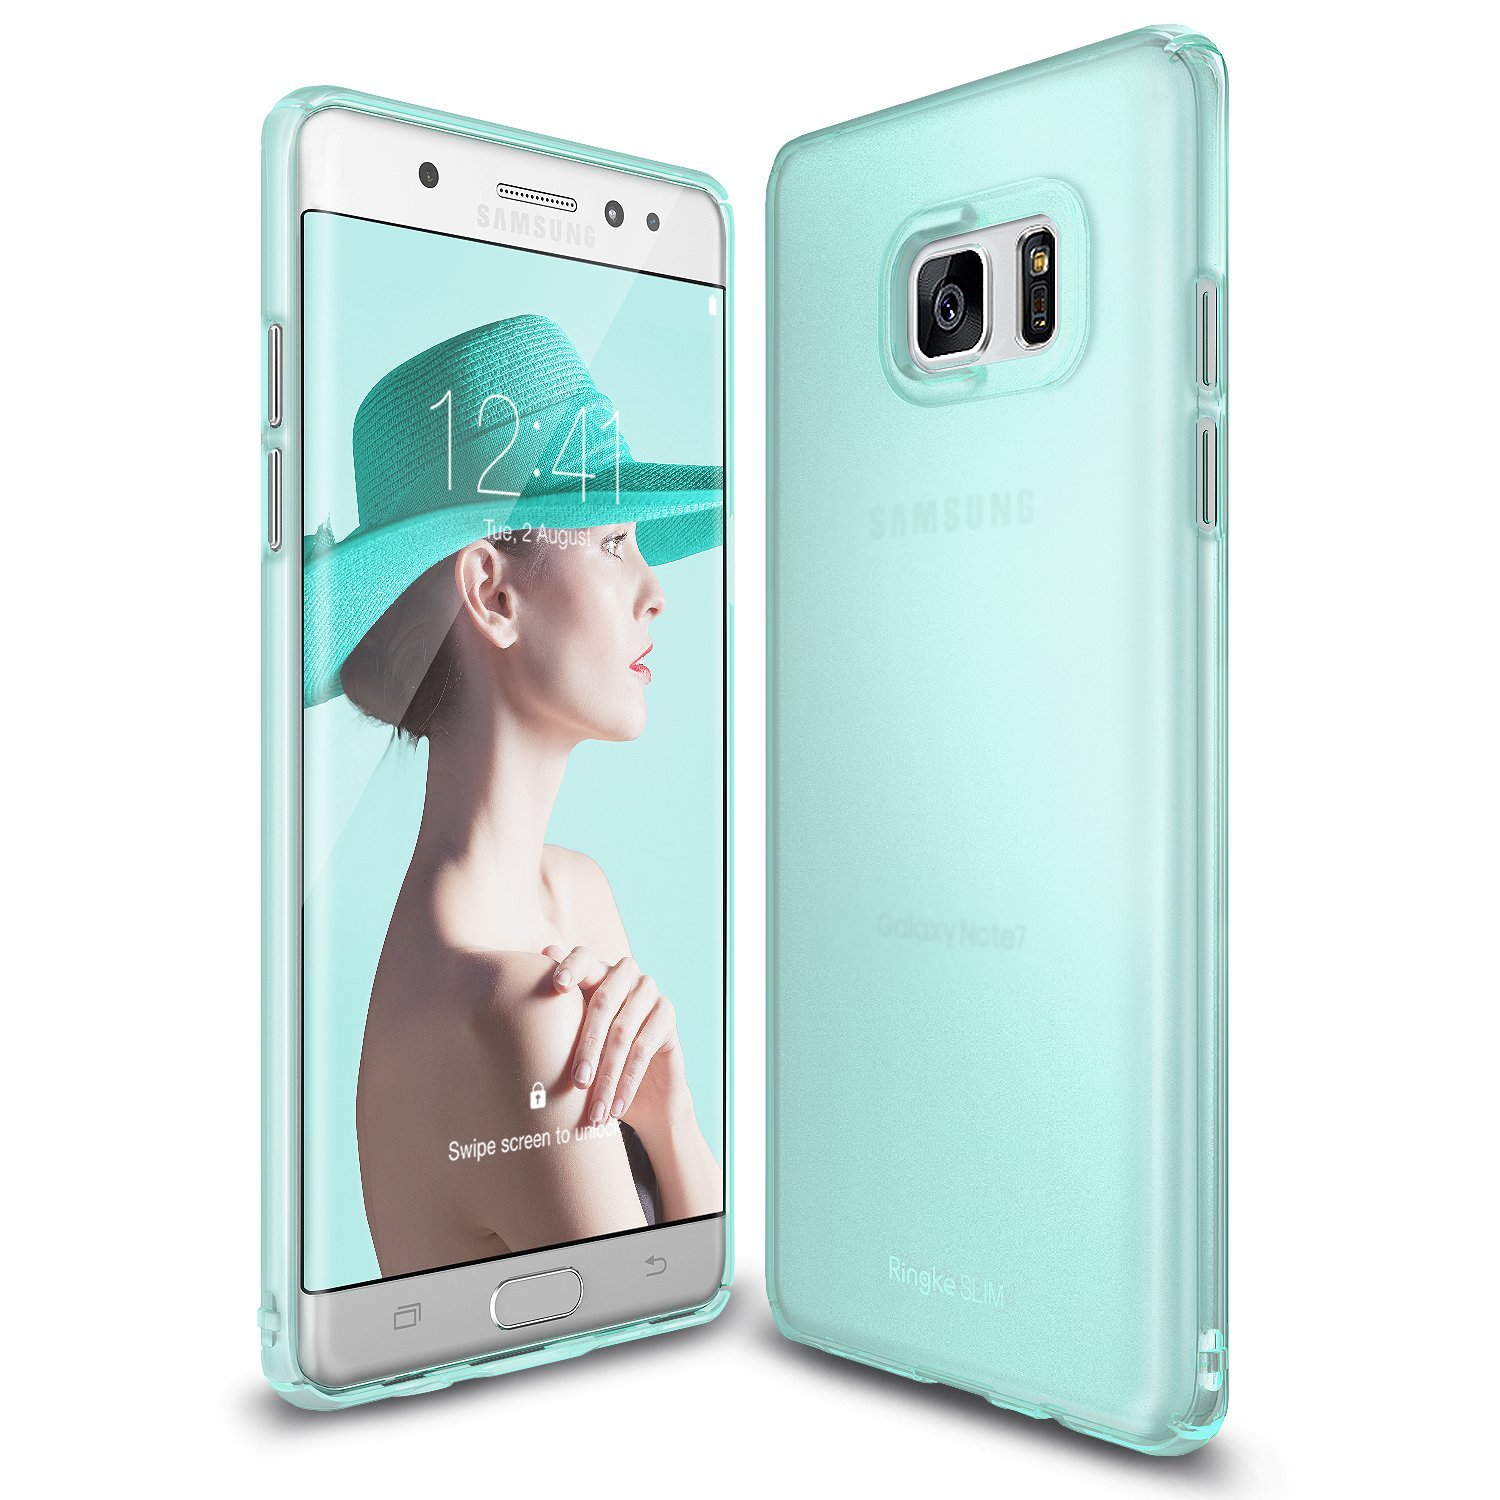 Samsung Galaxy Note 7  Case, Ringke [Frost Mint] SLIM Snug-Fit Slender [Tailored Cutouts] Ultra-Thin Fluid Curved Edge Enhance Protective Case Superior Coating PC Hard Skin Cover